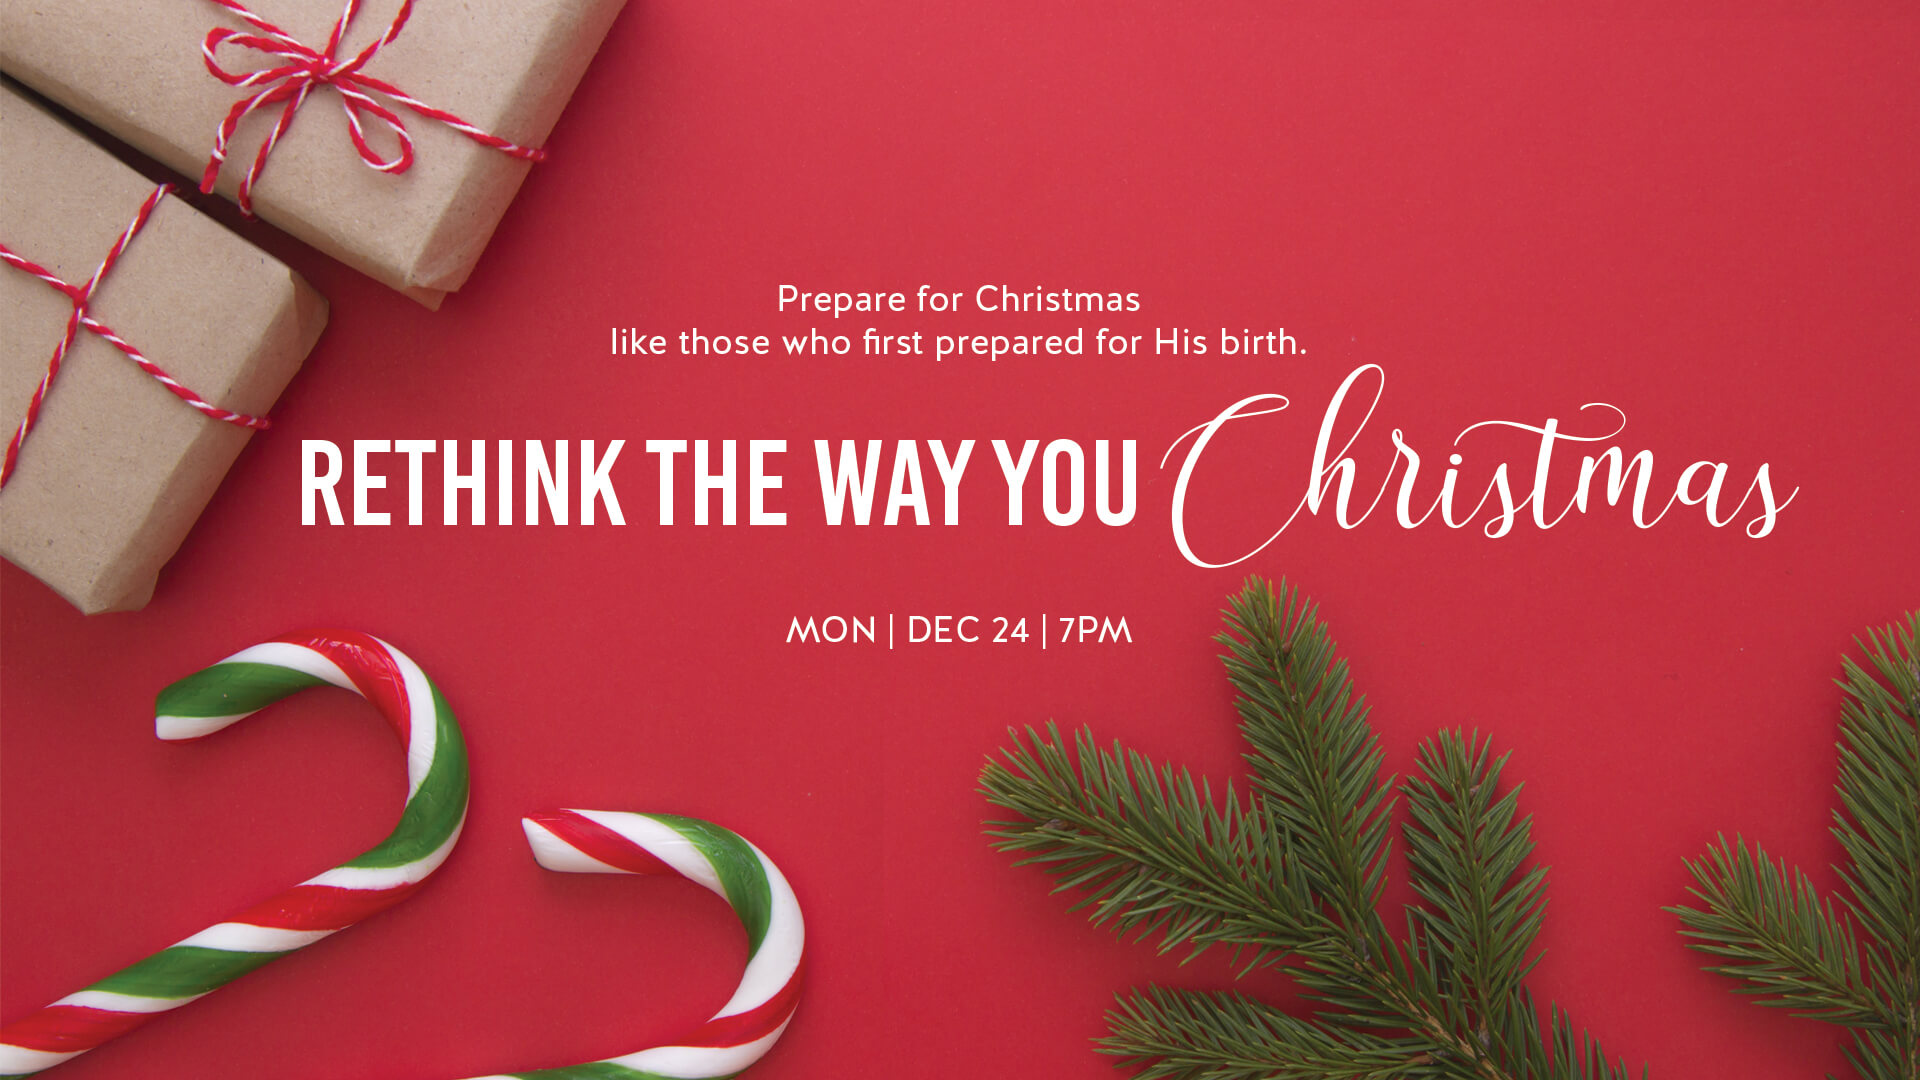 Prepare for Christmas like those who first prepared for his birth.